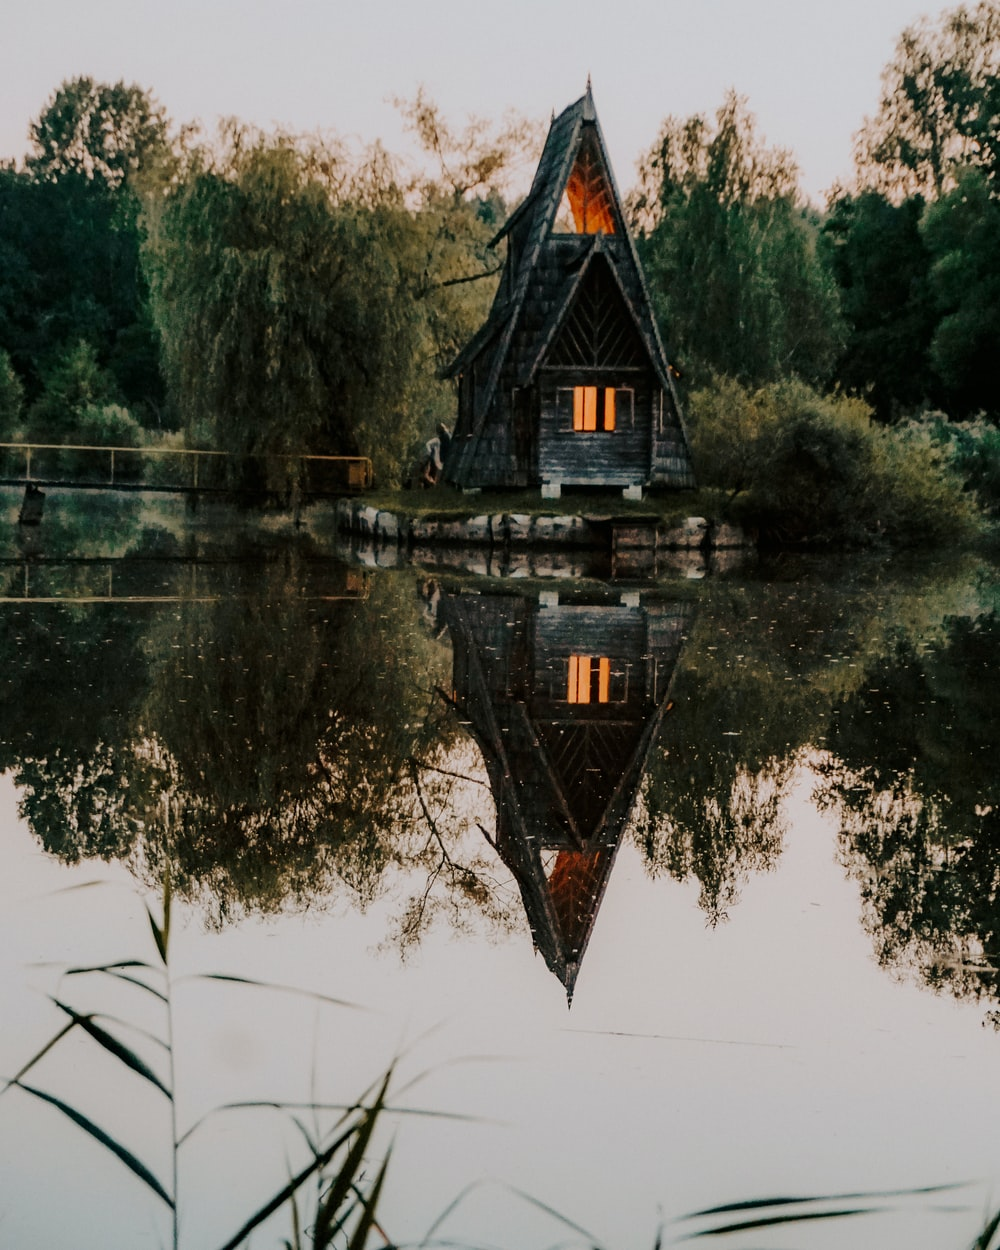 brown and black house on lake during daytime